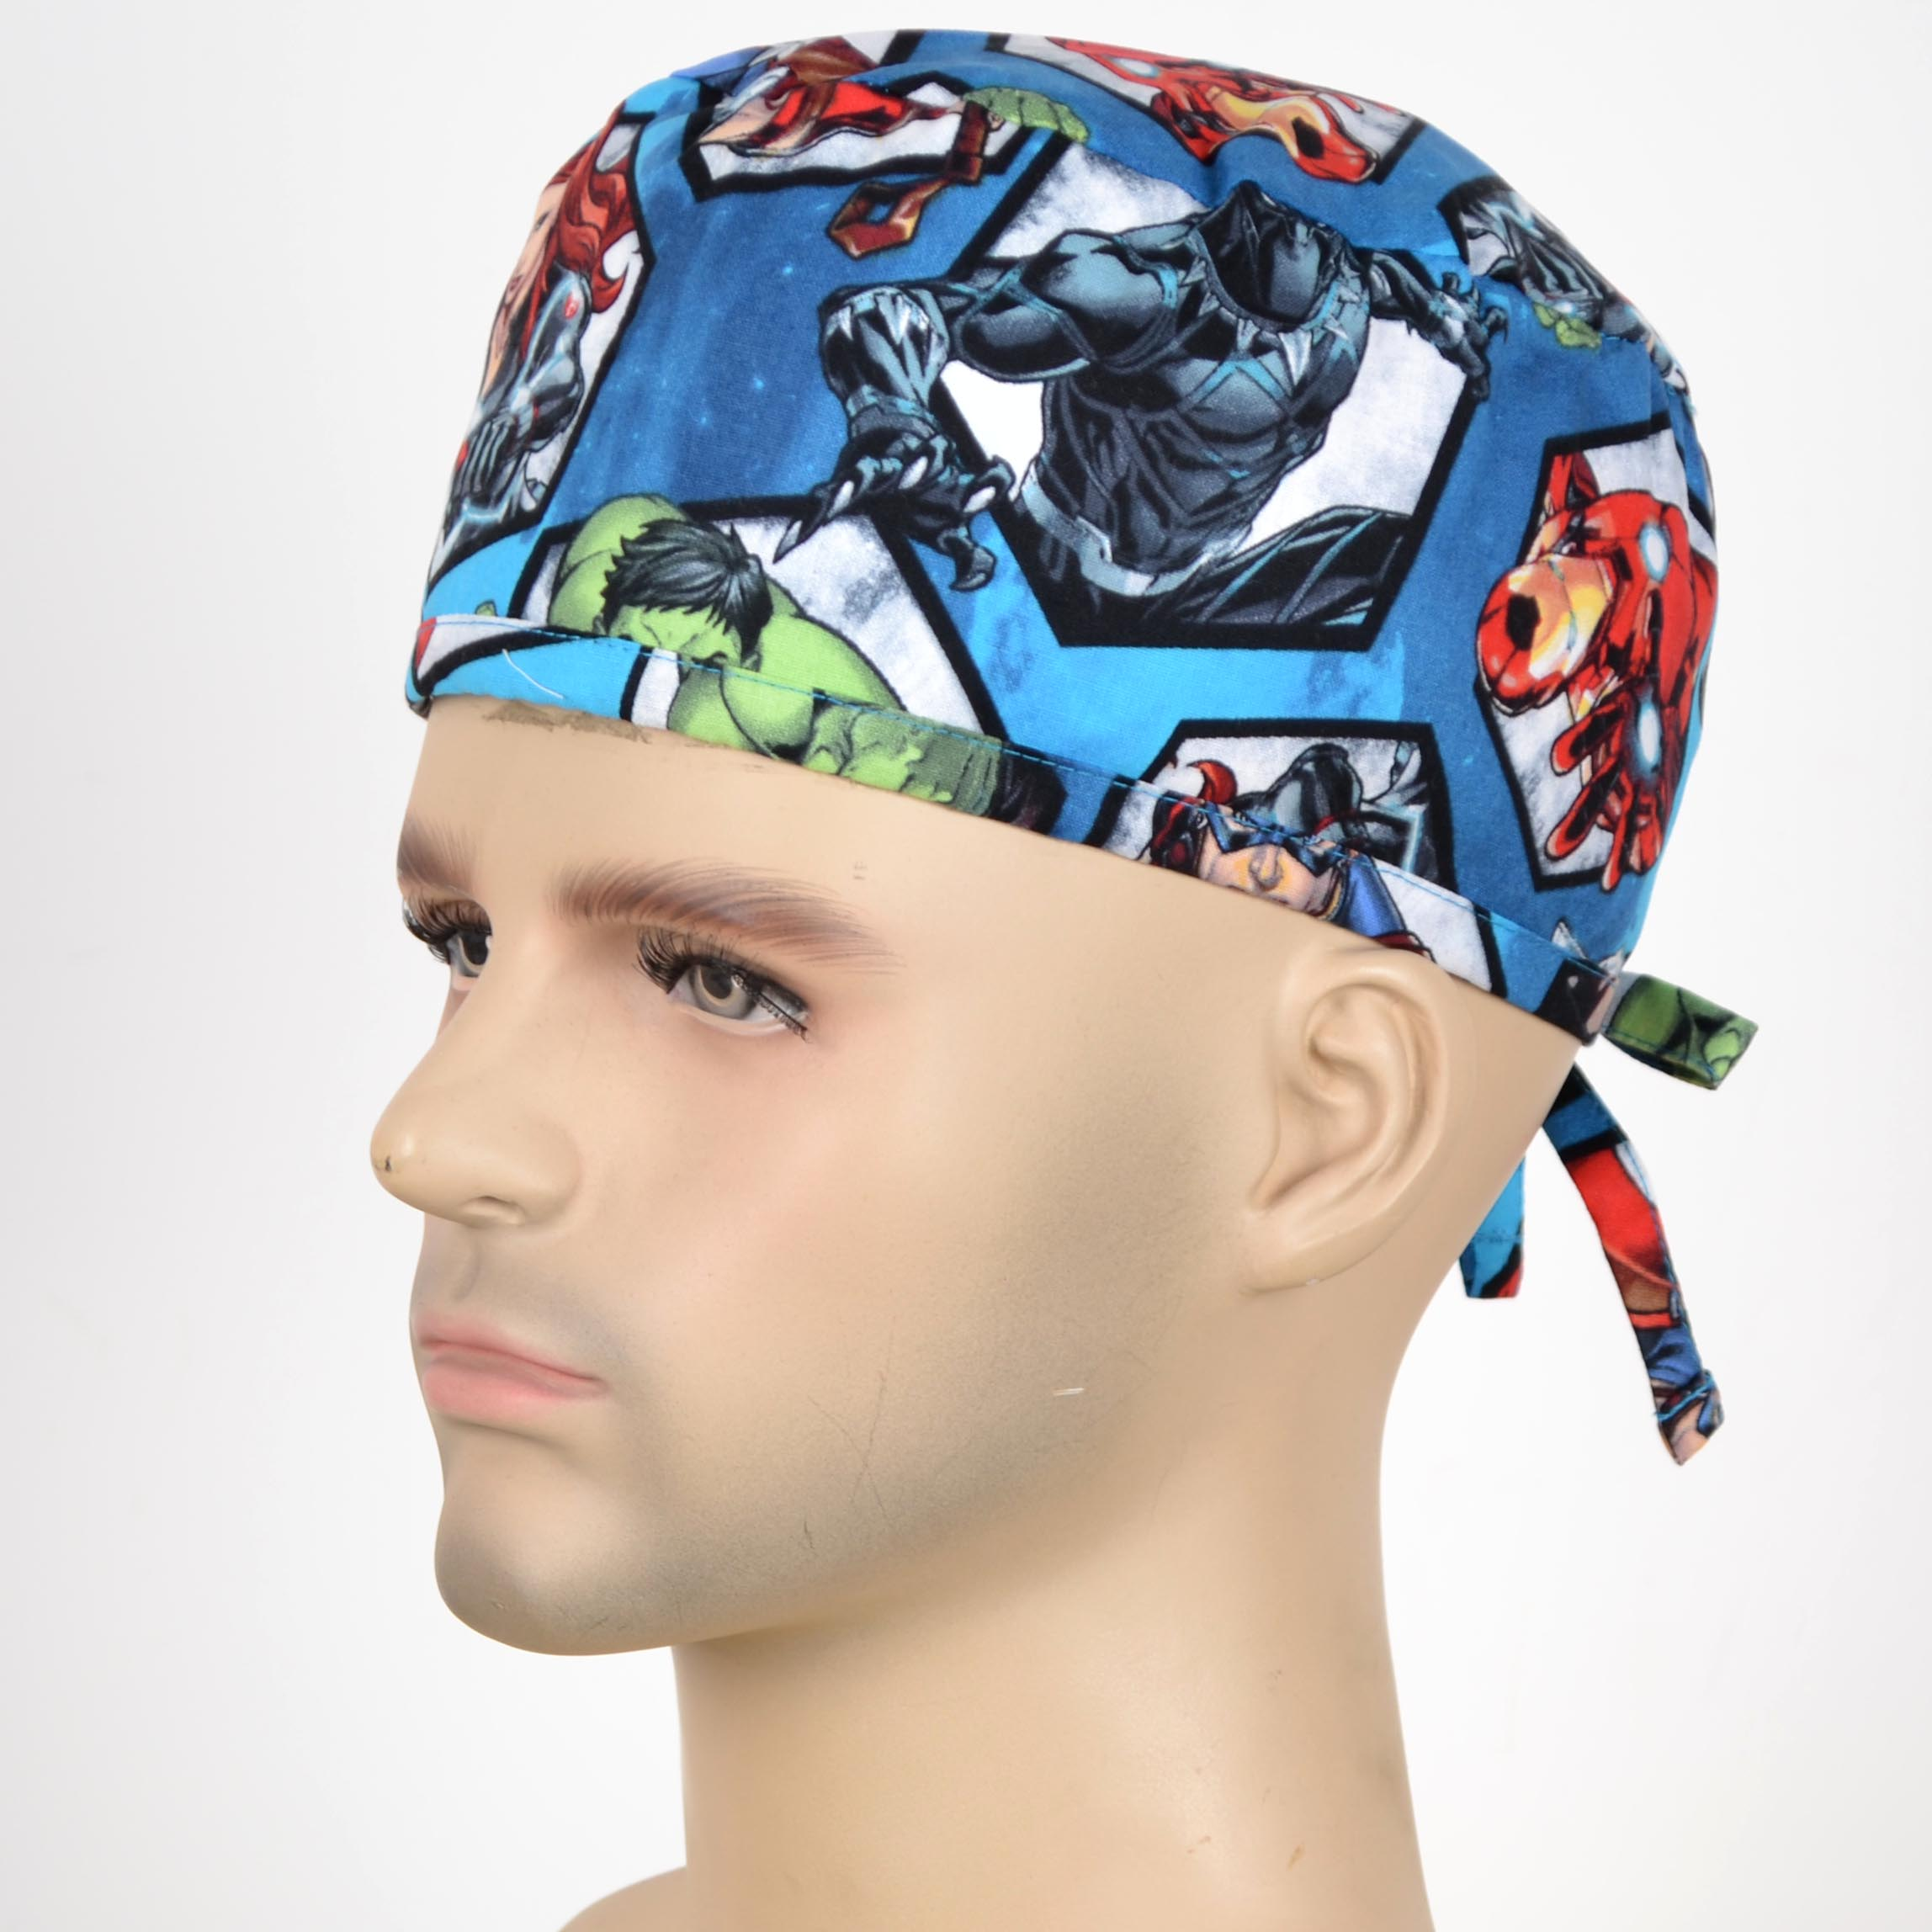 Men Print Medica Cap In 100% With Tie Back Band For Most Of The Men Head